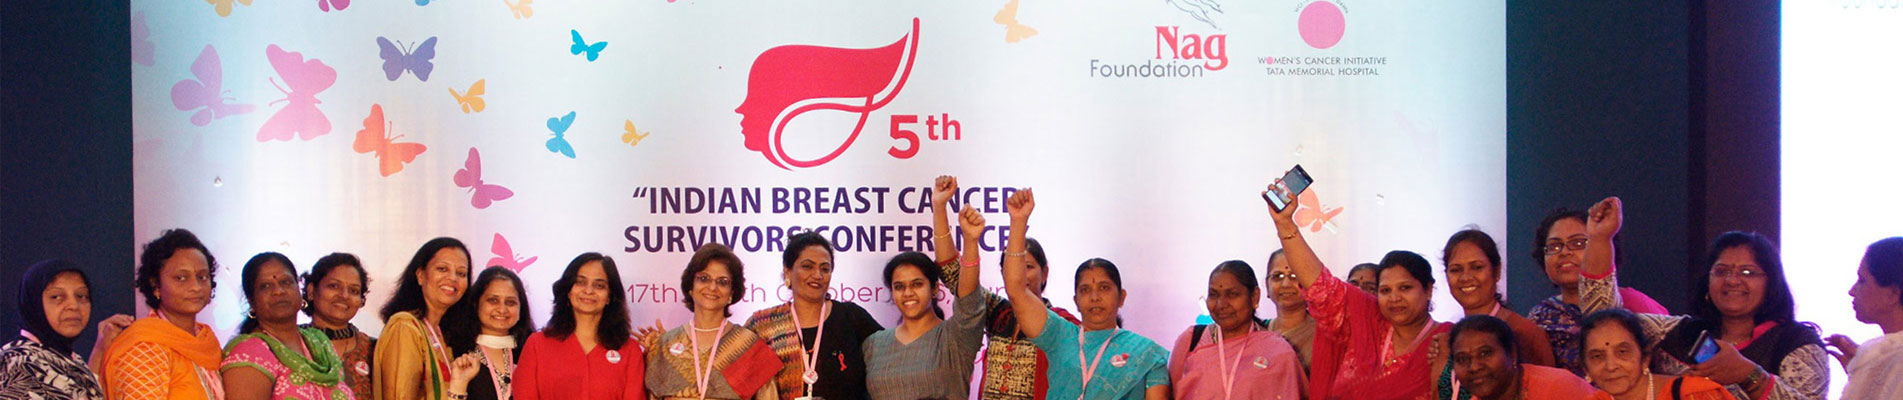 Breast Cancer Survivor Conference for Cancer Awareness with cancer treament experts